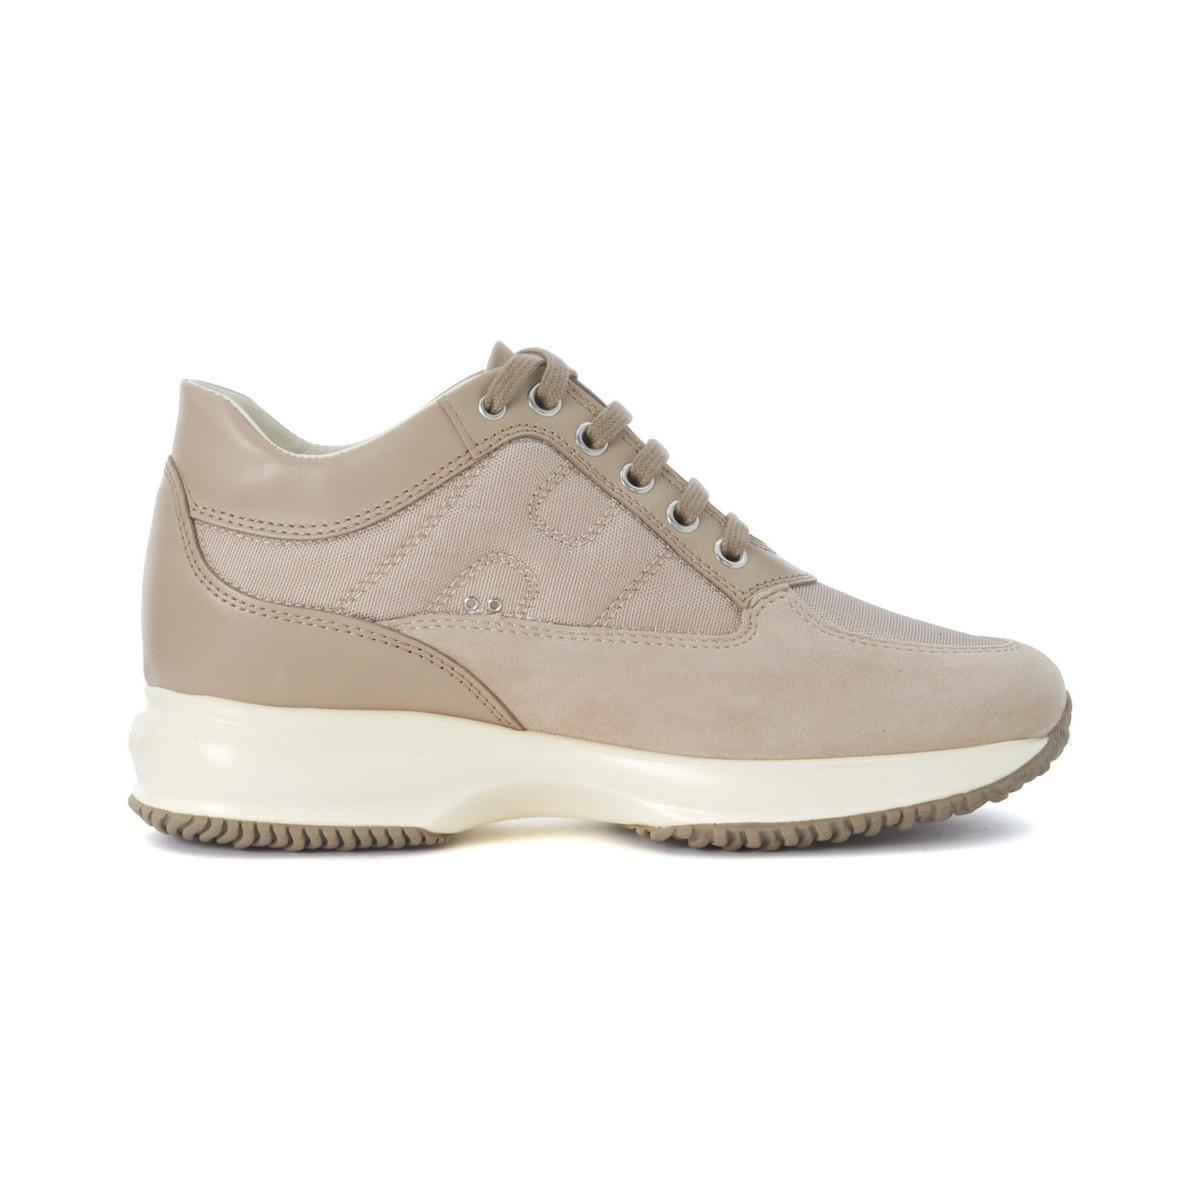 Clearance Order Buy Cheap Looking For Hogan Interactive leather sneaker women's Shoes (Trainers) in Free Shipping Cost Discount 2018 Unisex 6CNtqqy1H